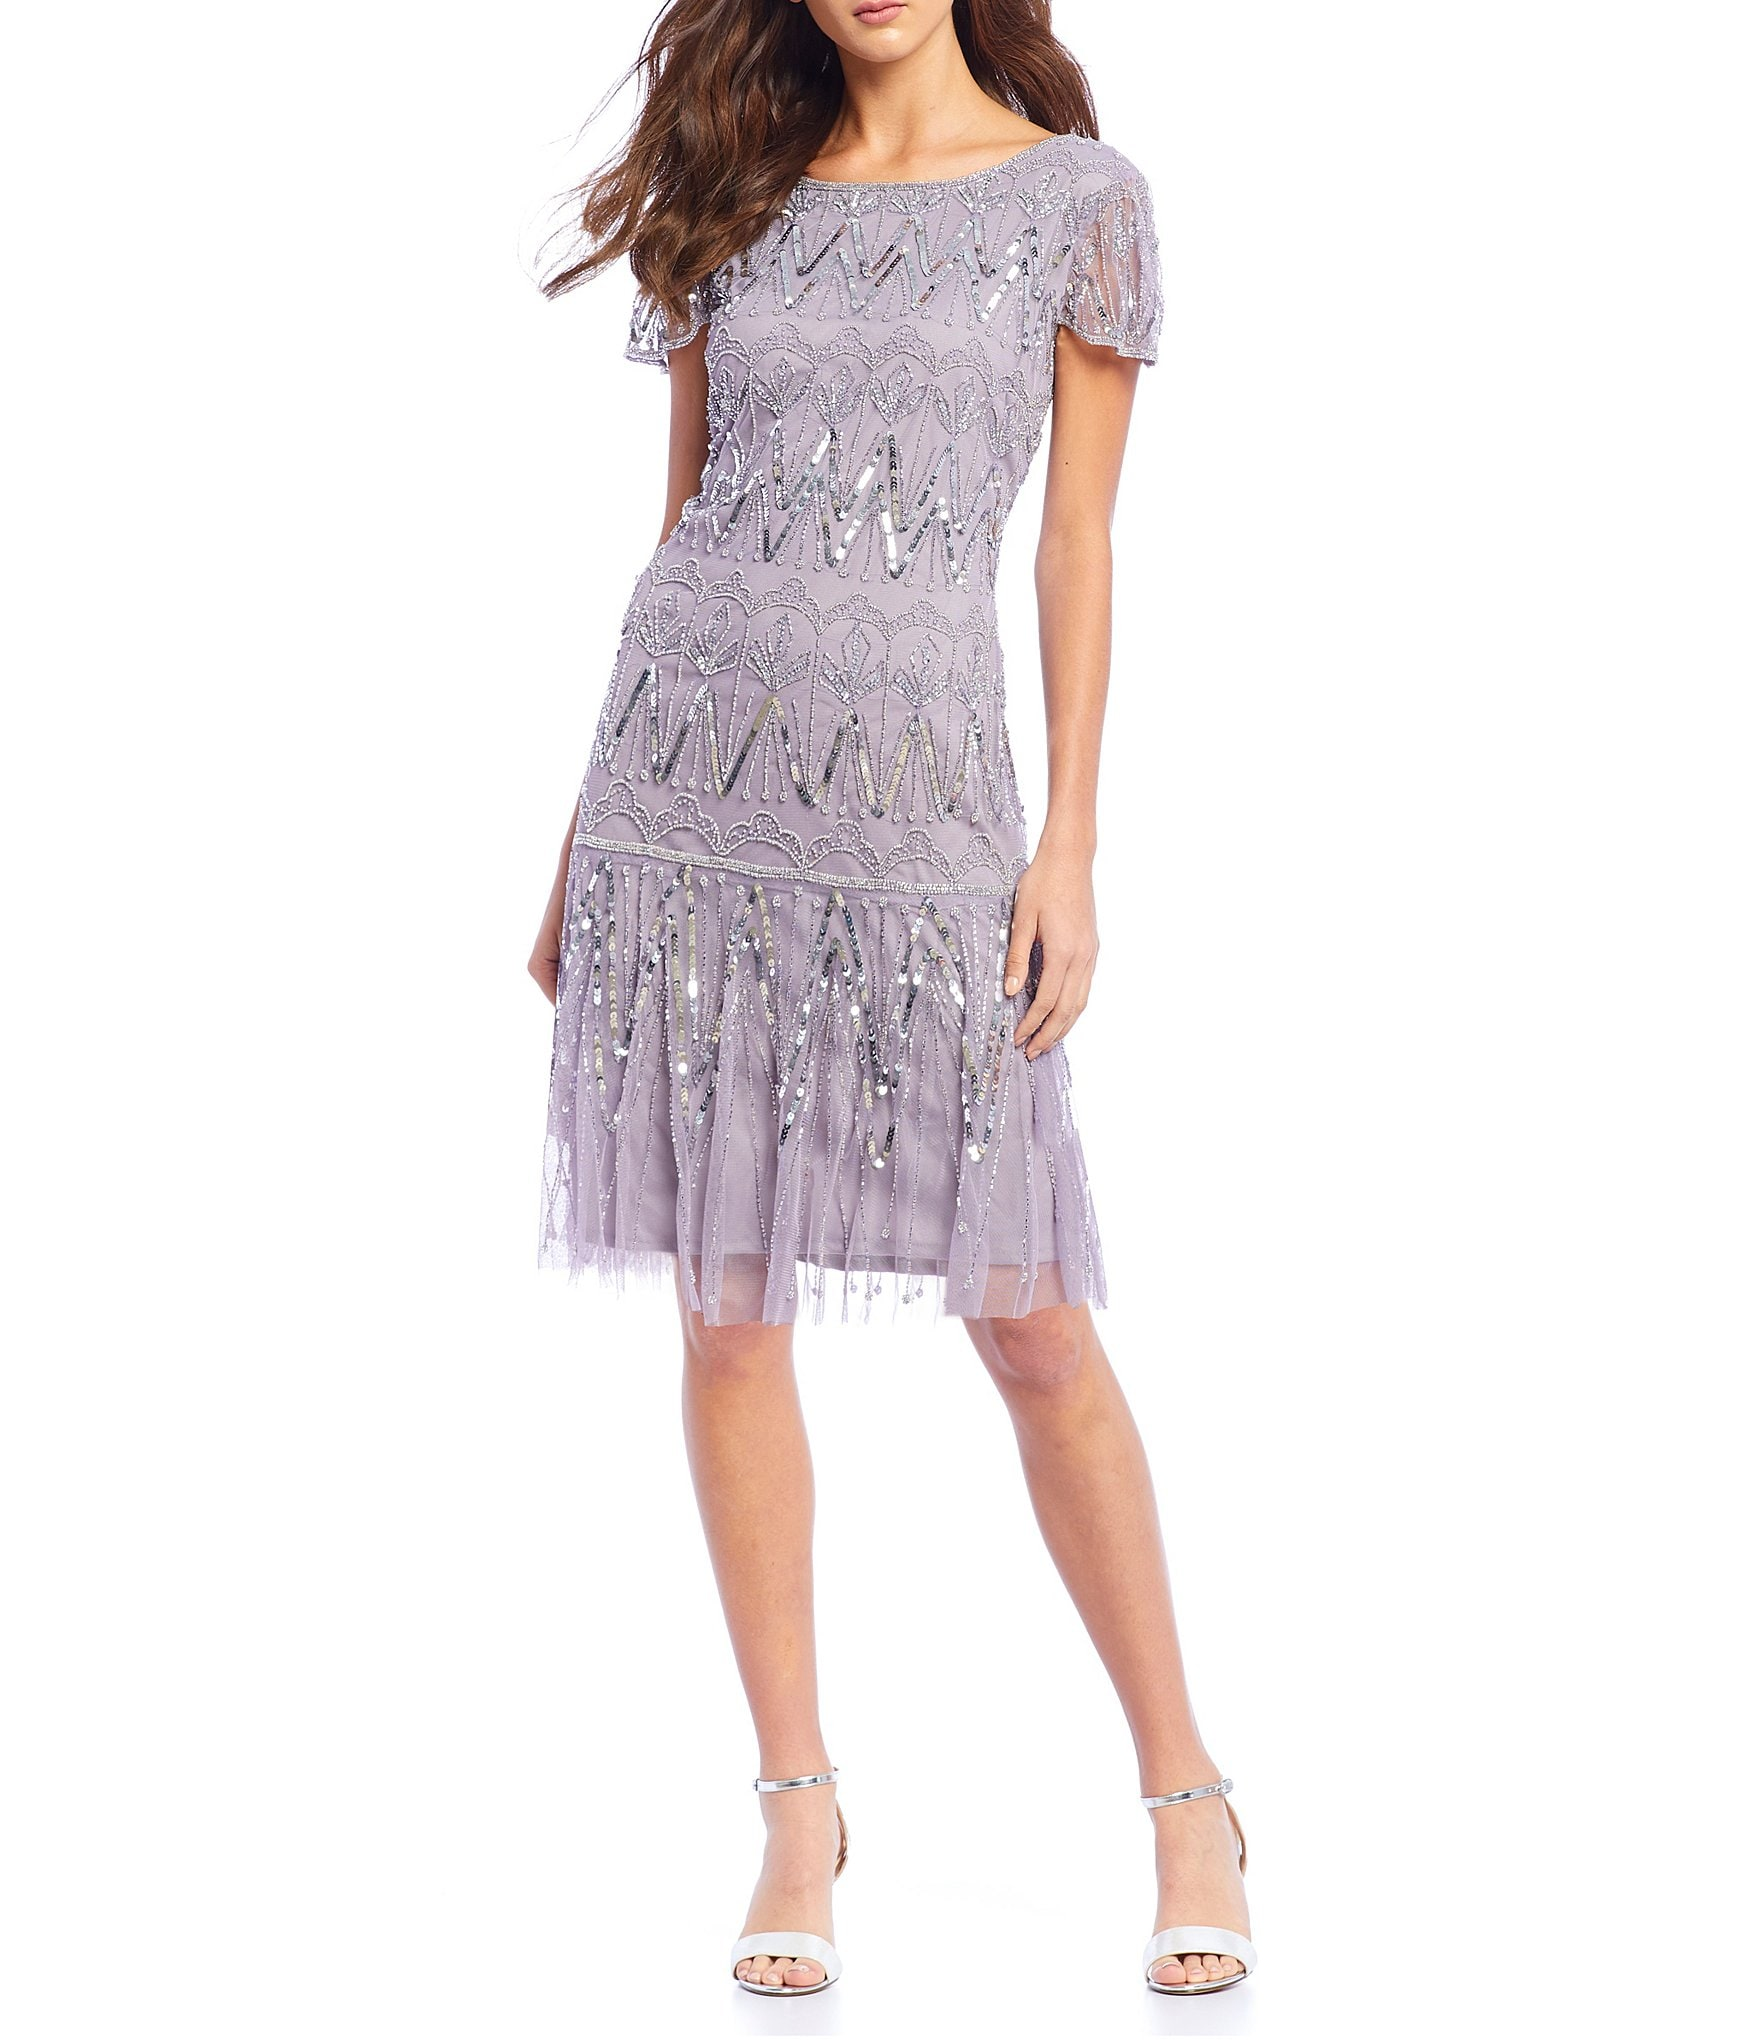 278a030979f Pisarro Nights Women s Cocktail   Party Dresses